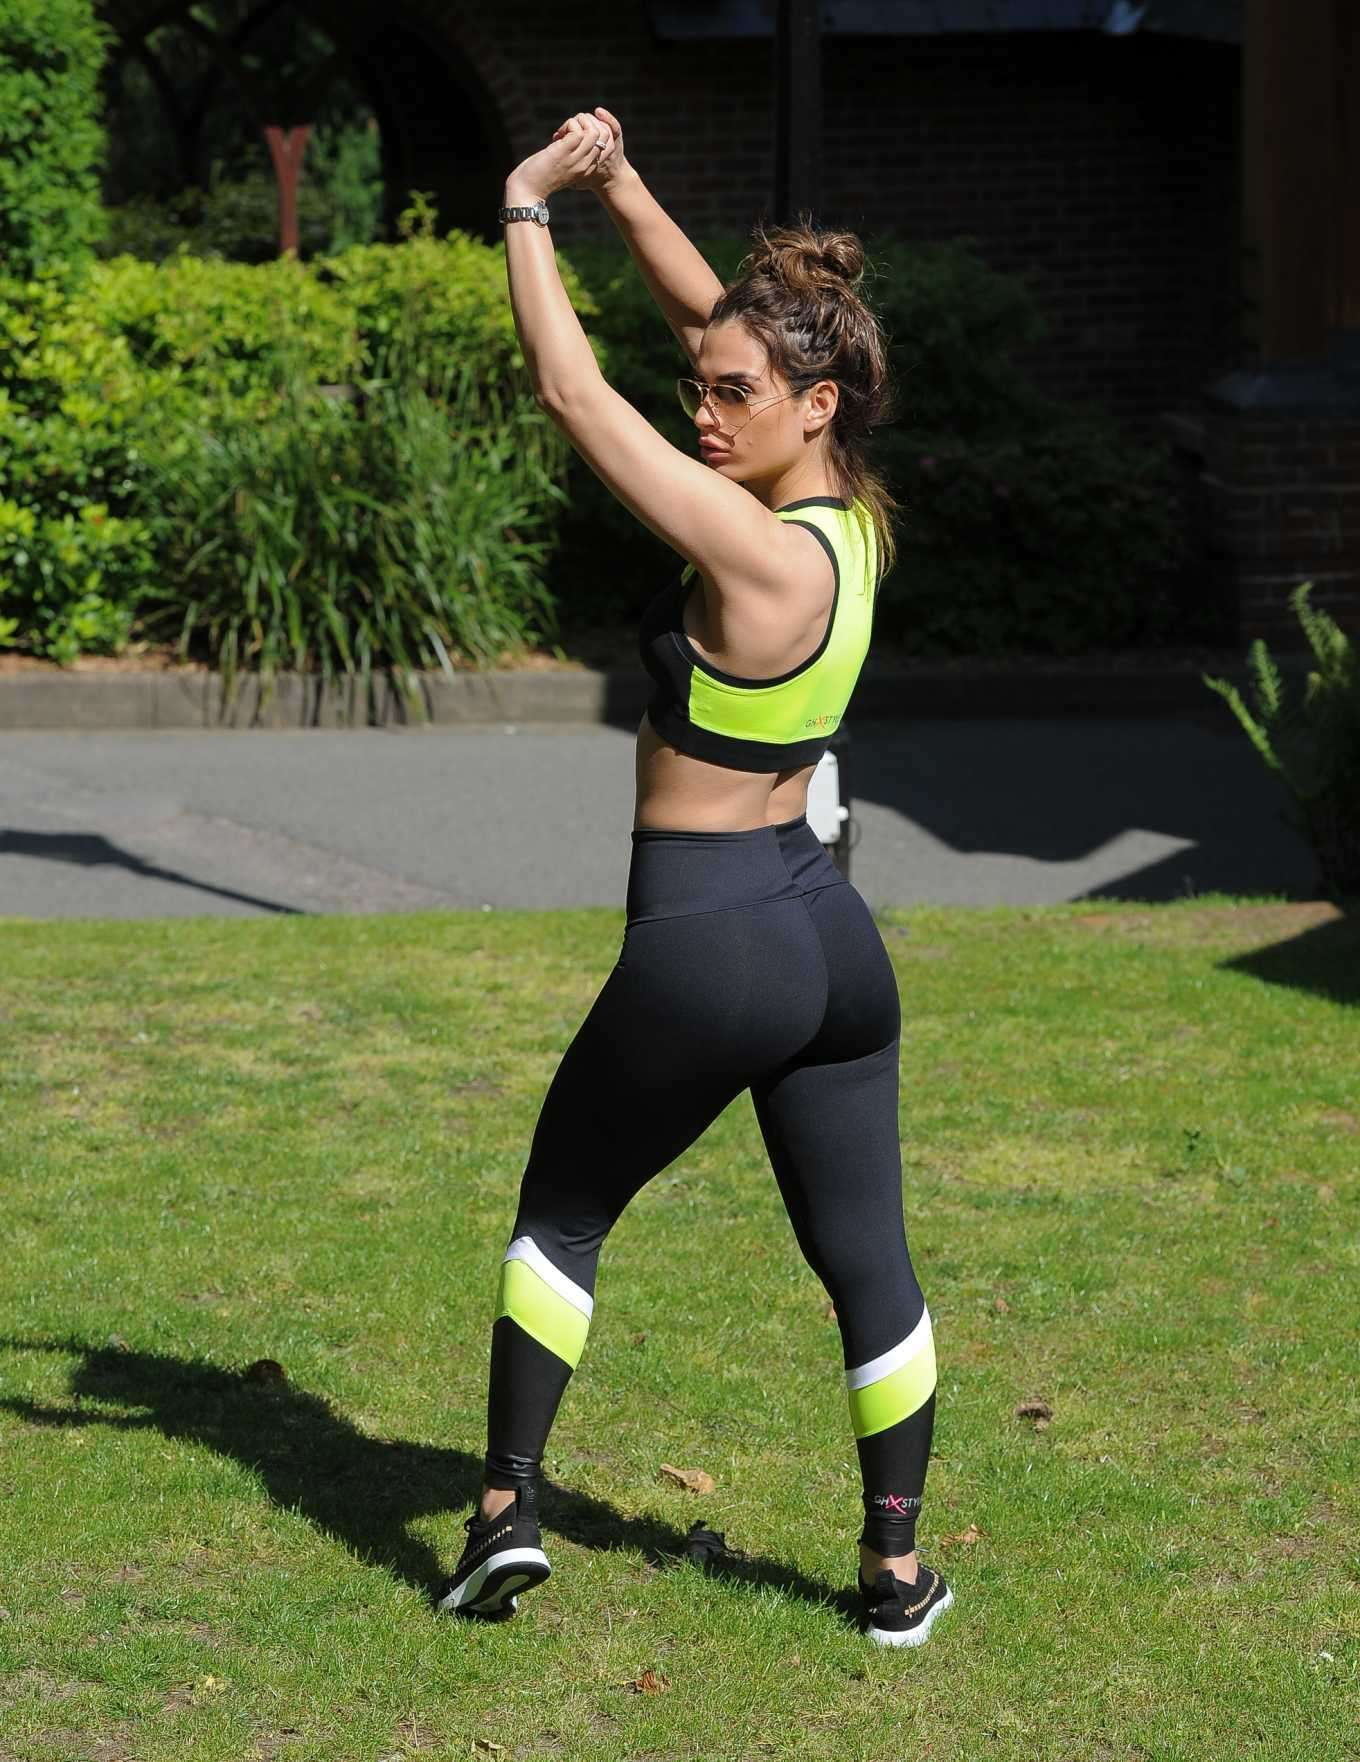 Nicole Bass Booty in Gym Outfit, Working Out in Essex